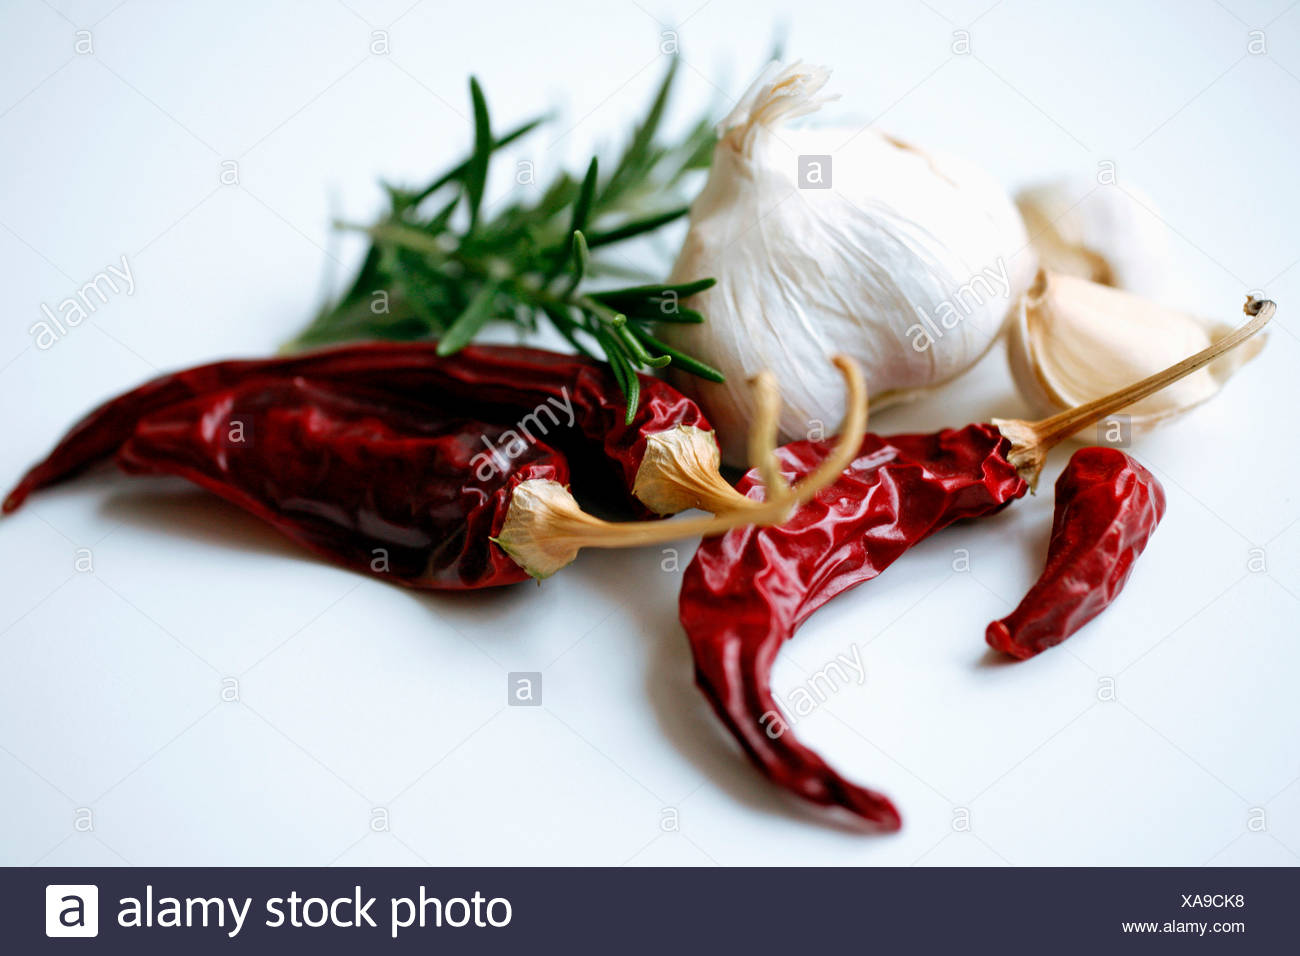 Chili peppers and garlic over white background - Stock Image